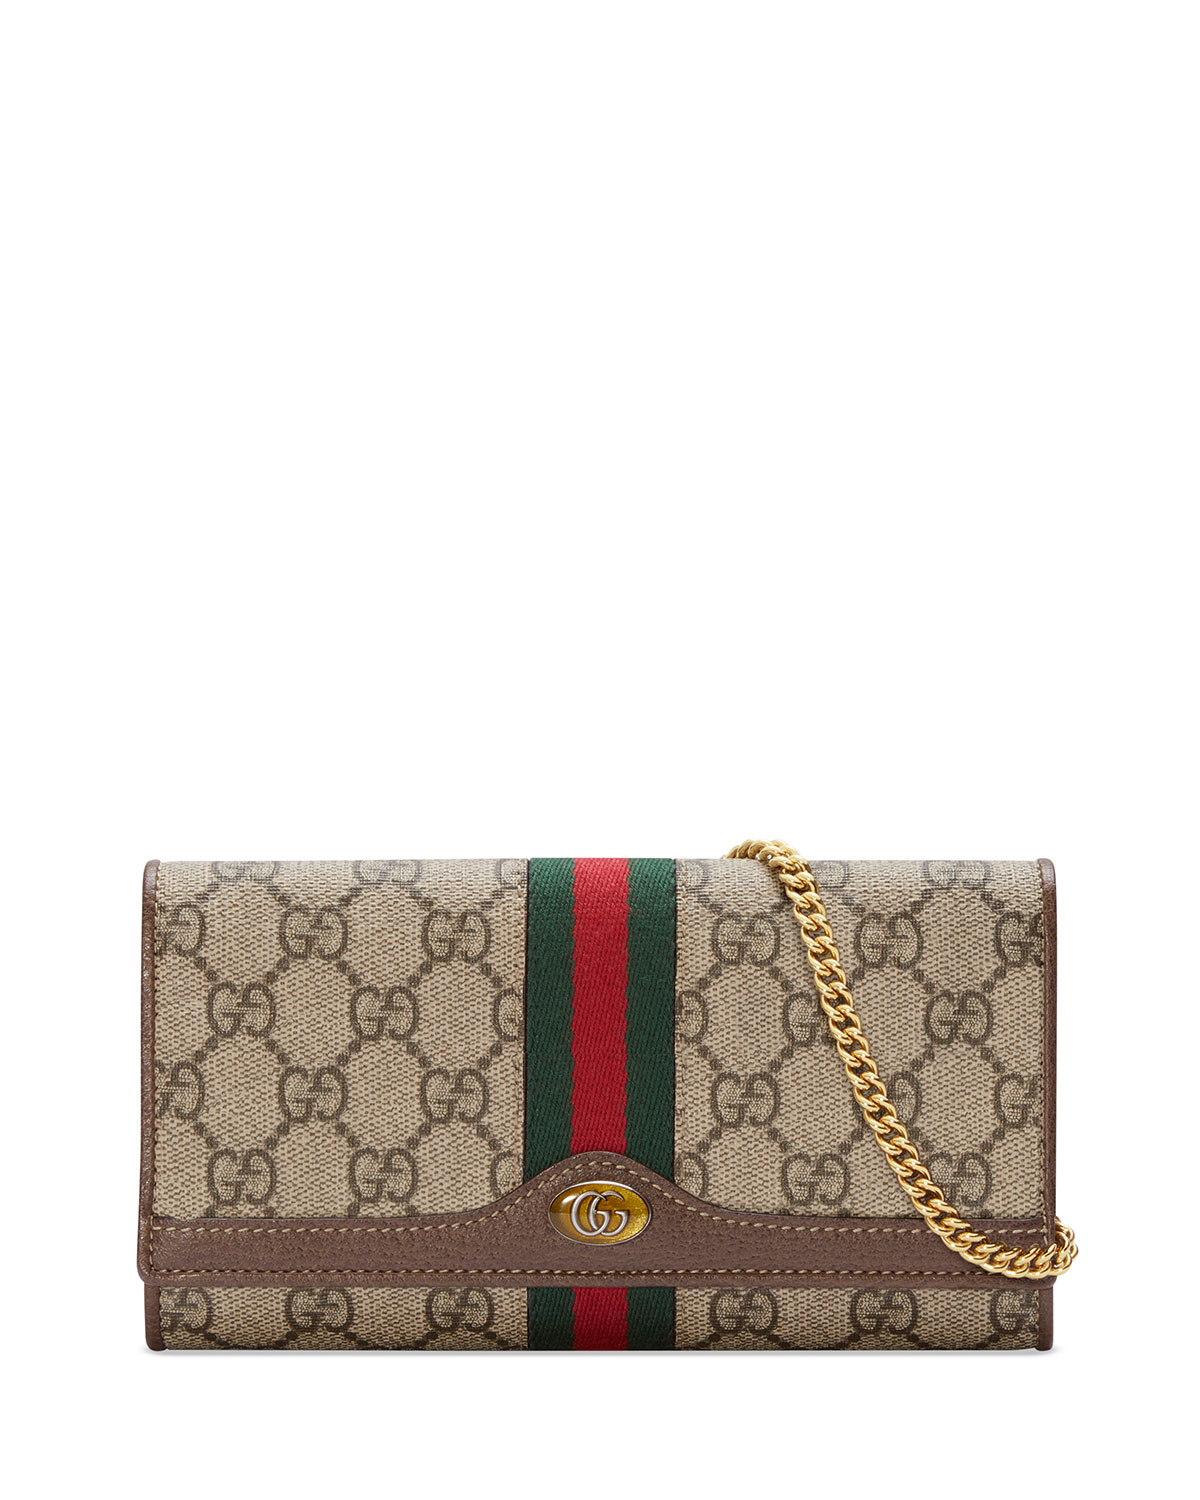 f8b51be7d5485a Gucci Ophidia GG Supreme Canvas Flap Wallet on Chain | Neiman Marcus